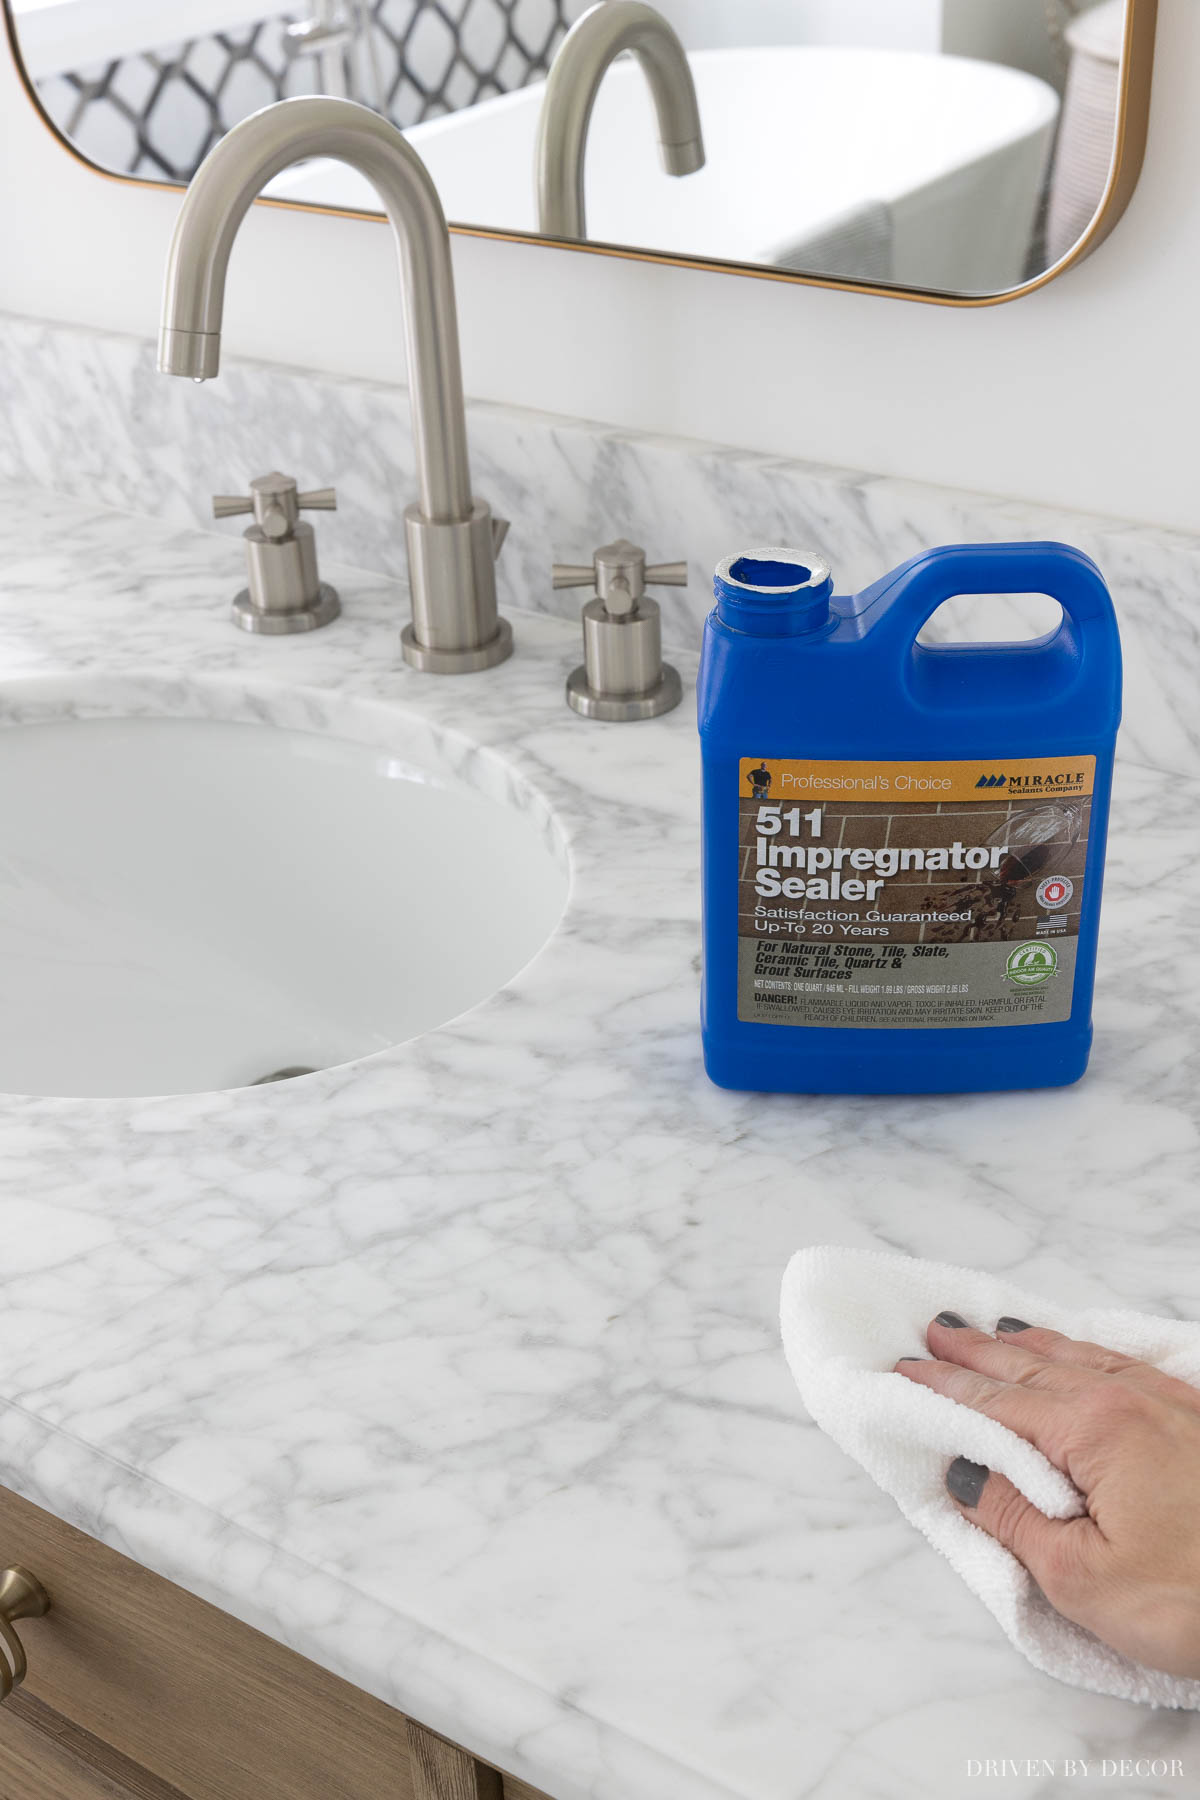 Keeping marble in the bathroom cleans means you have to seal it - this sealer works best!